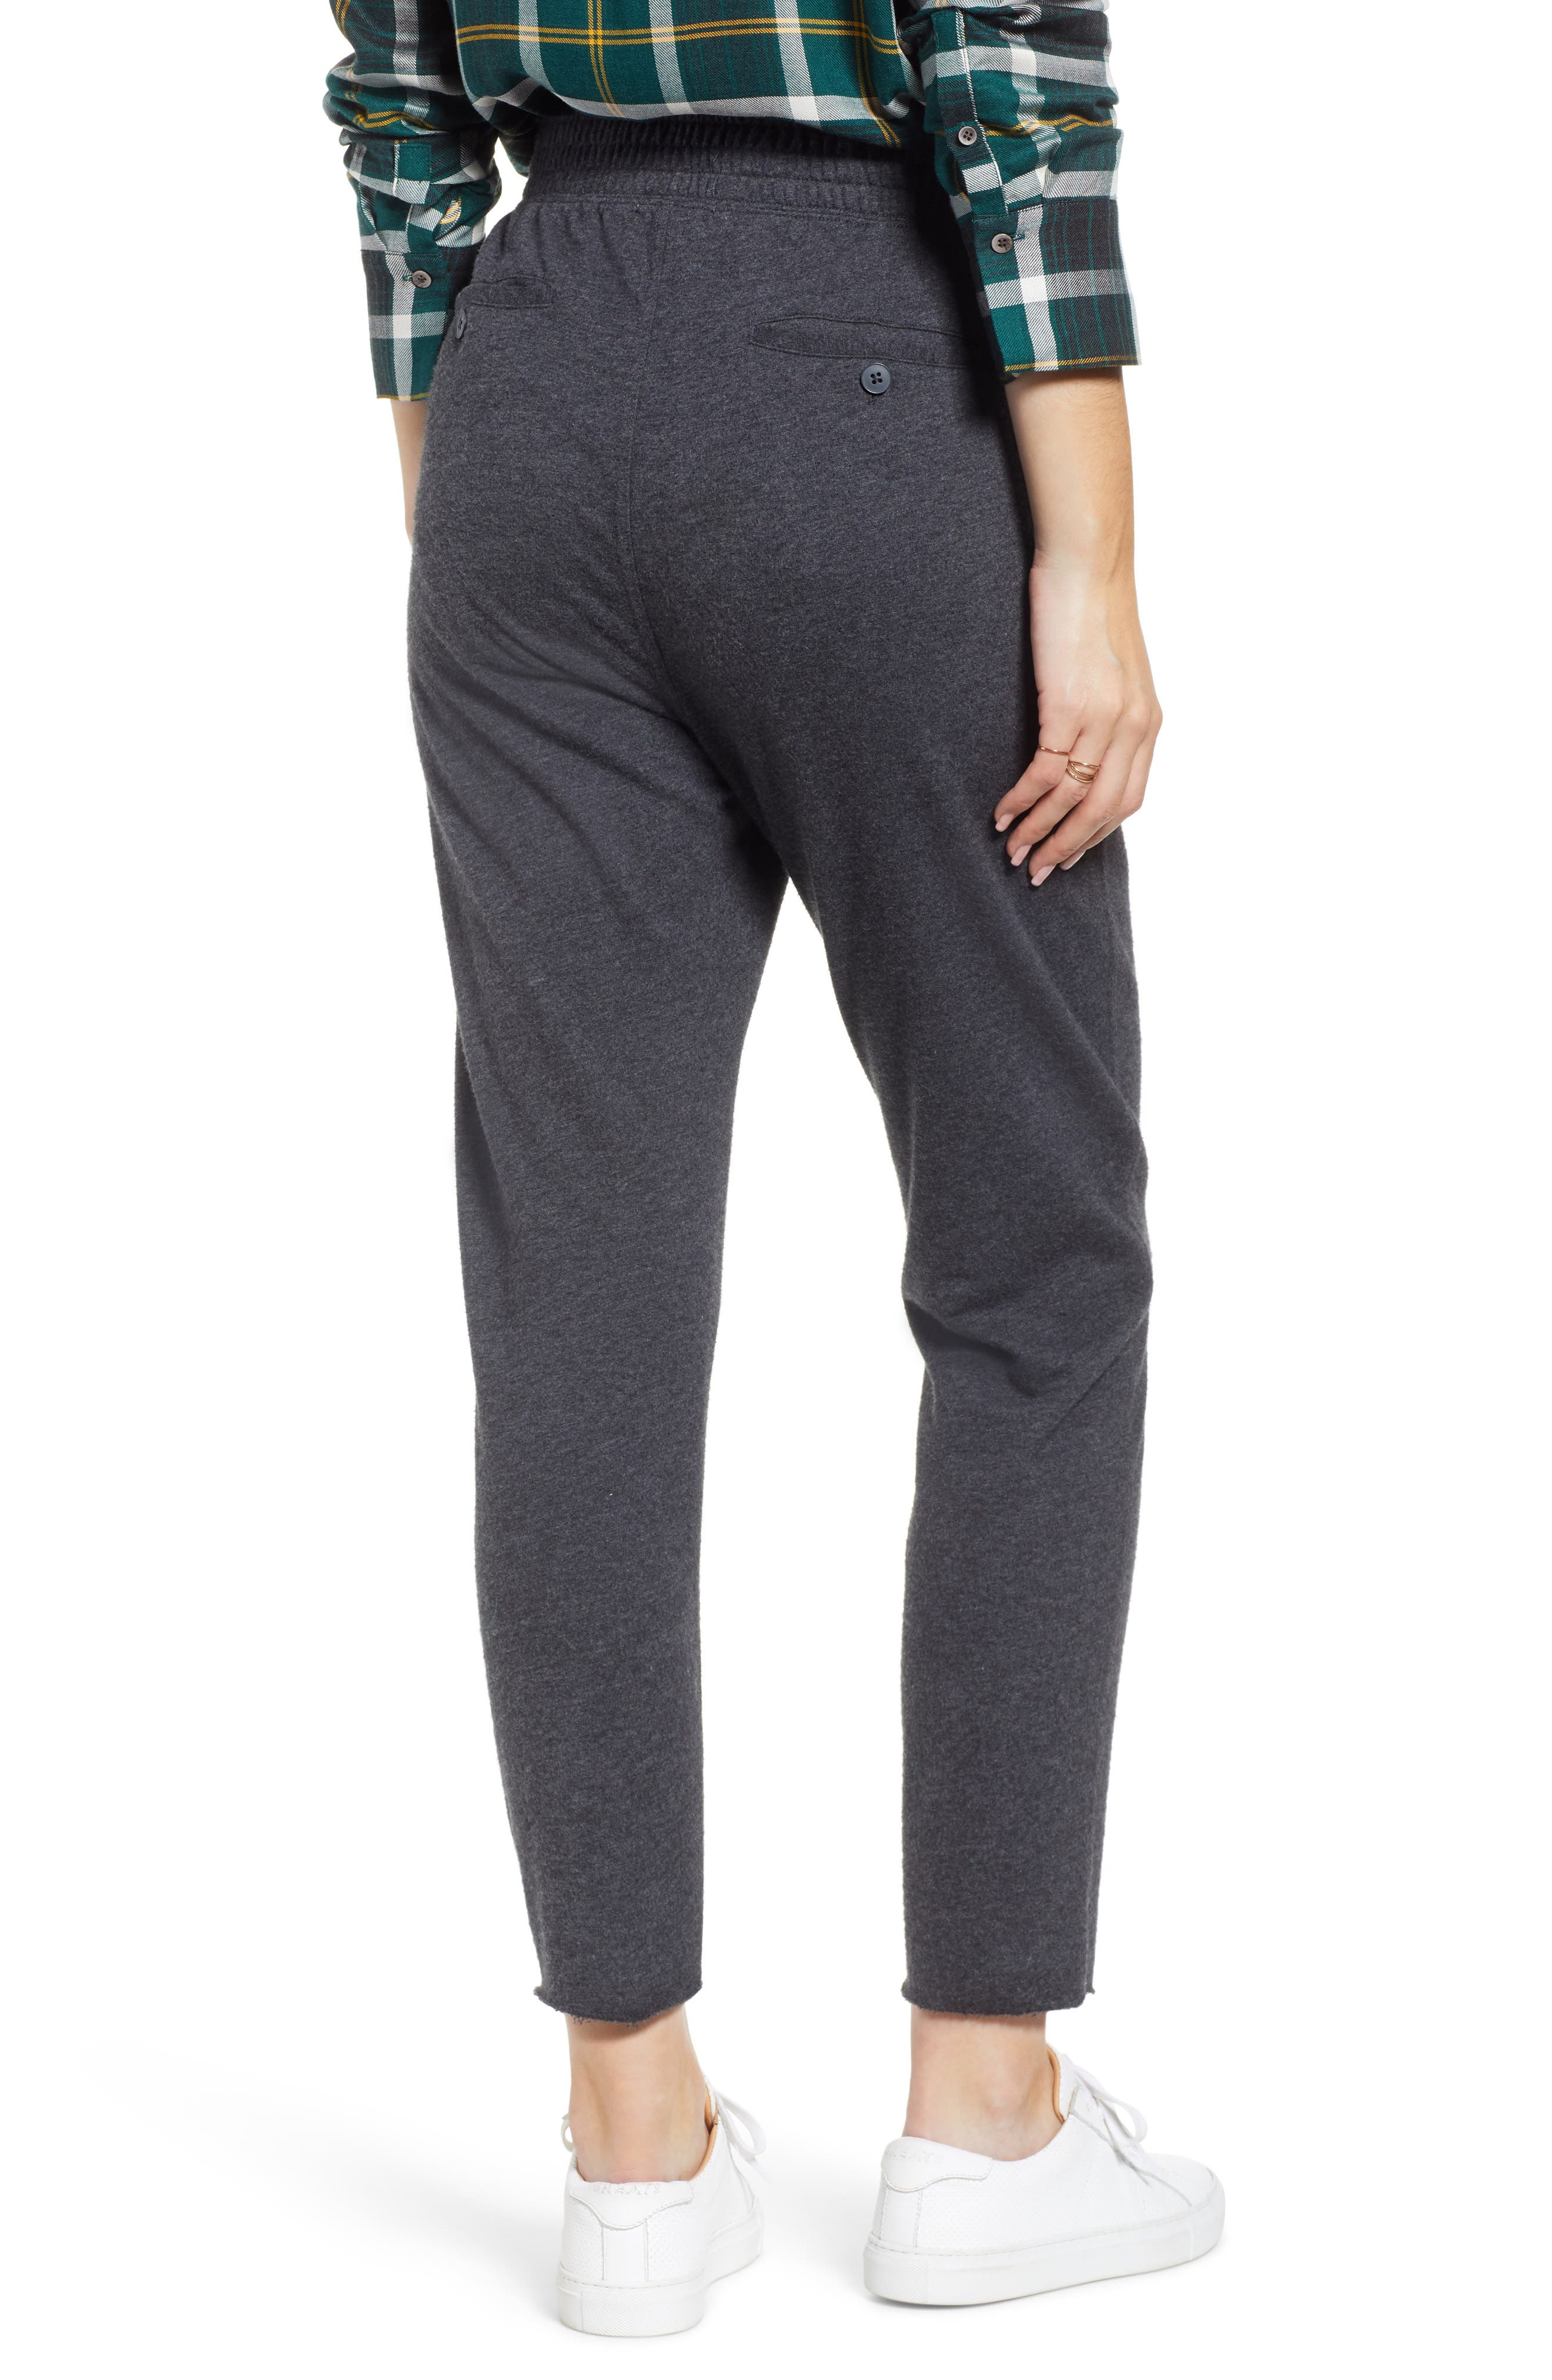 Jogger Pants,                             Alternate thumbnail 2, color,                             GREY DARK CHARCOAL HEATHER